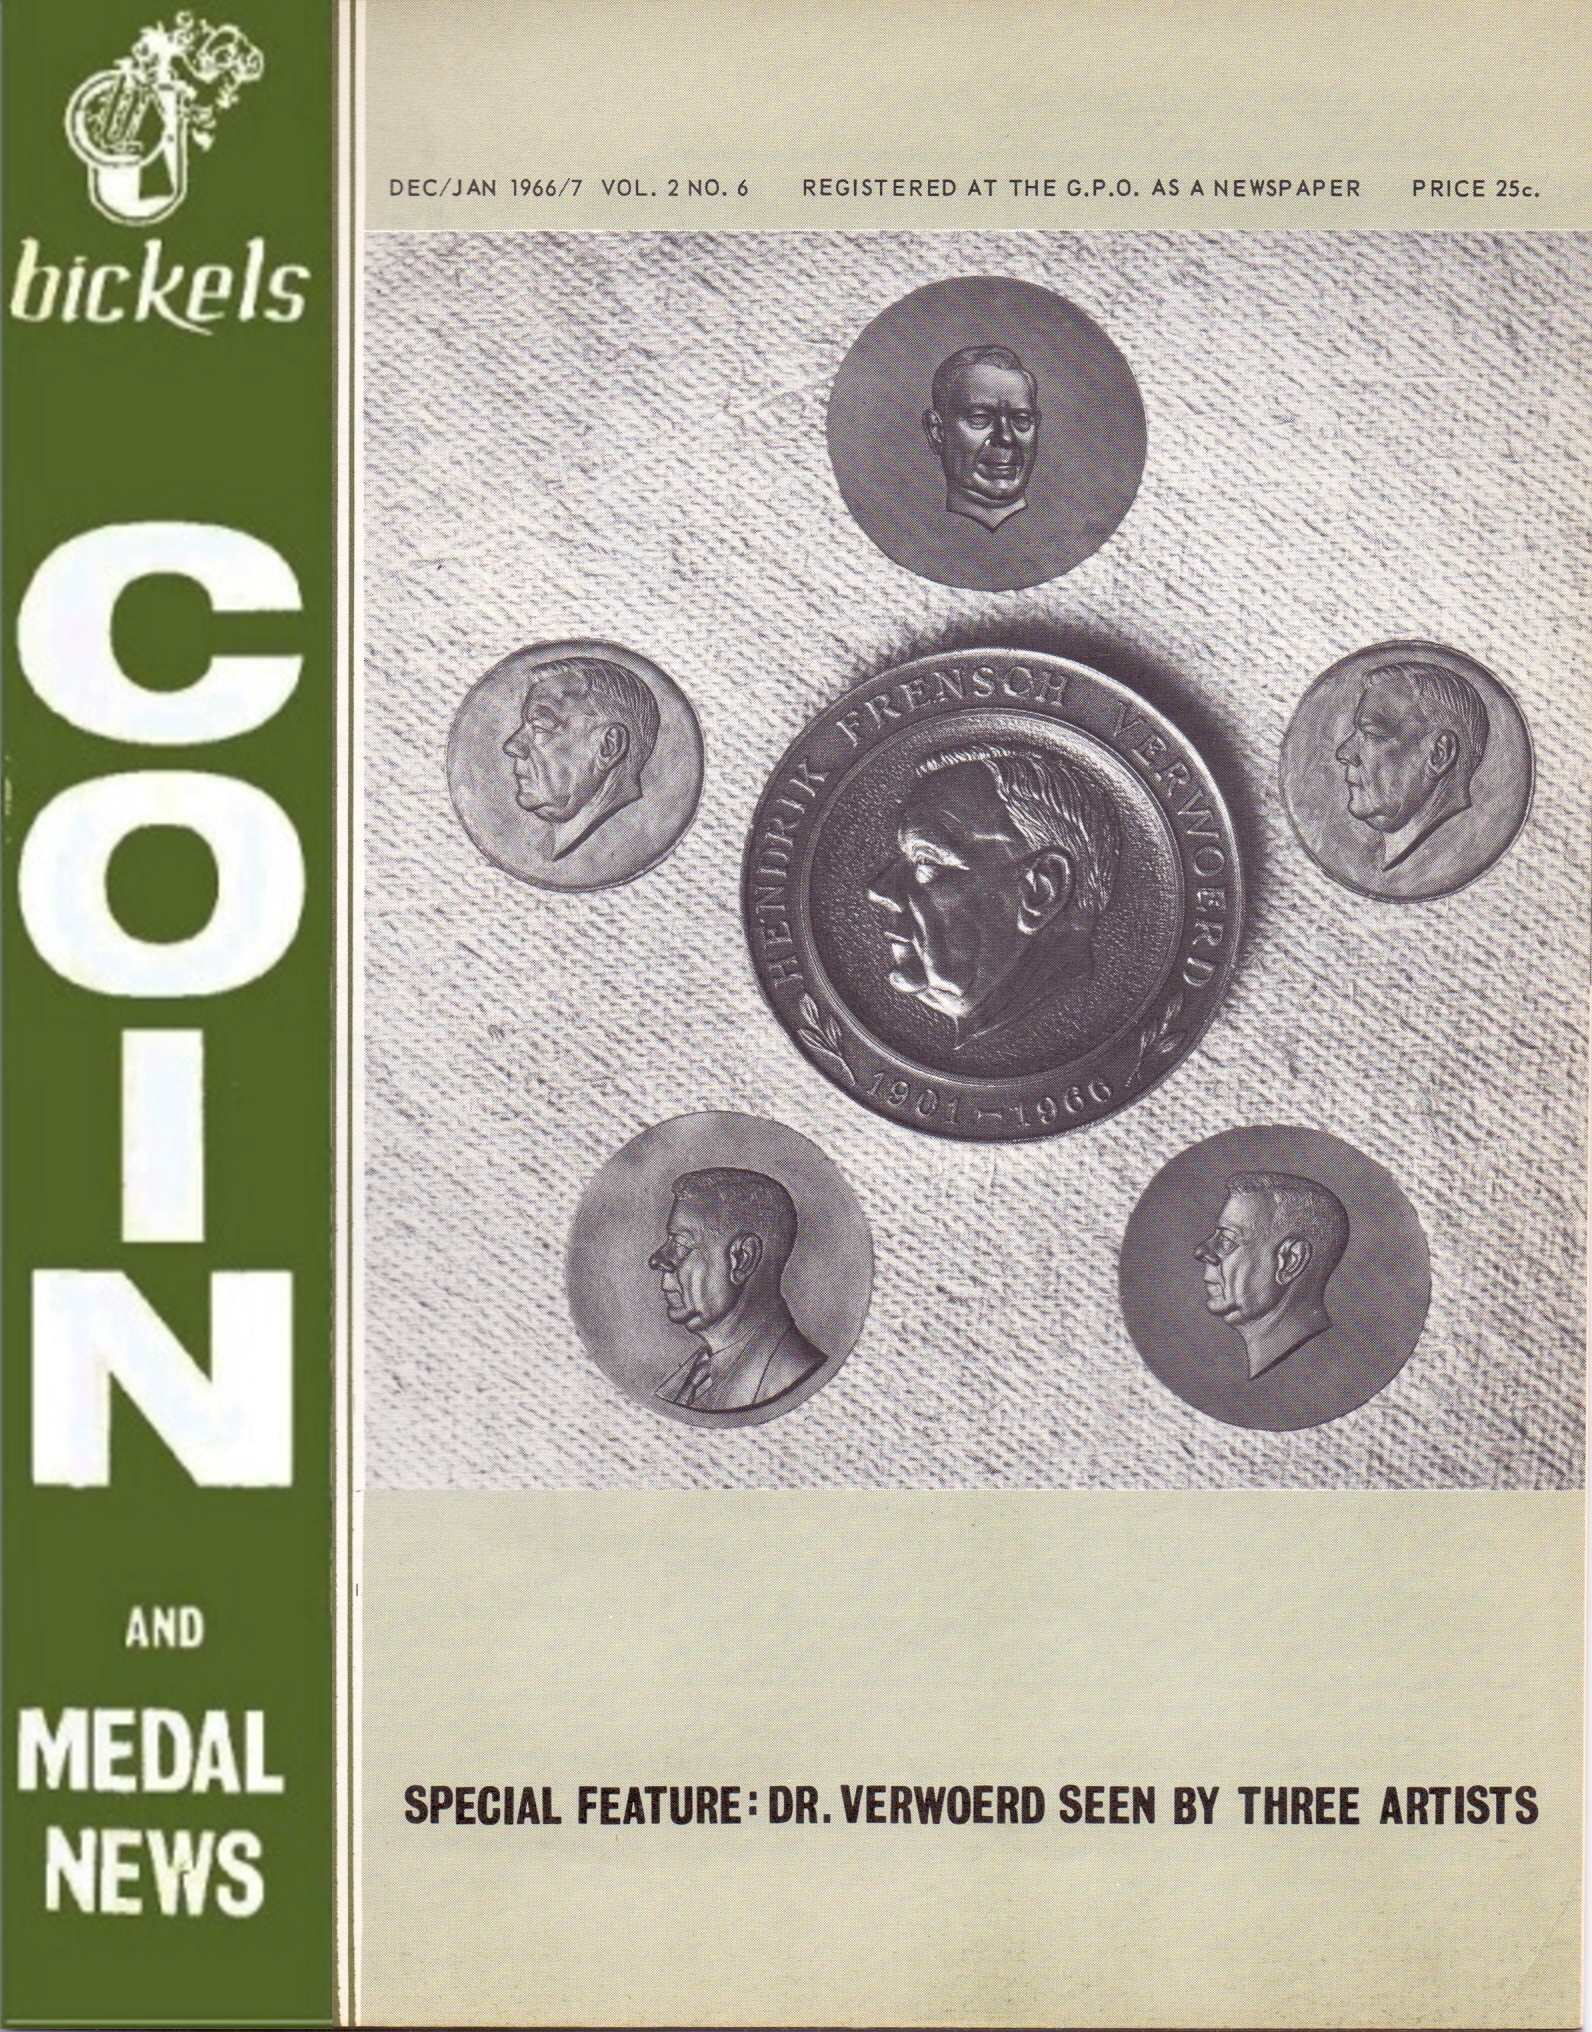 Bickels Coin & Medal News Dec Jan 1966 67 Vol 2 No 6